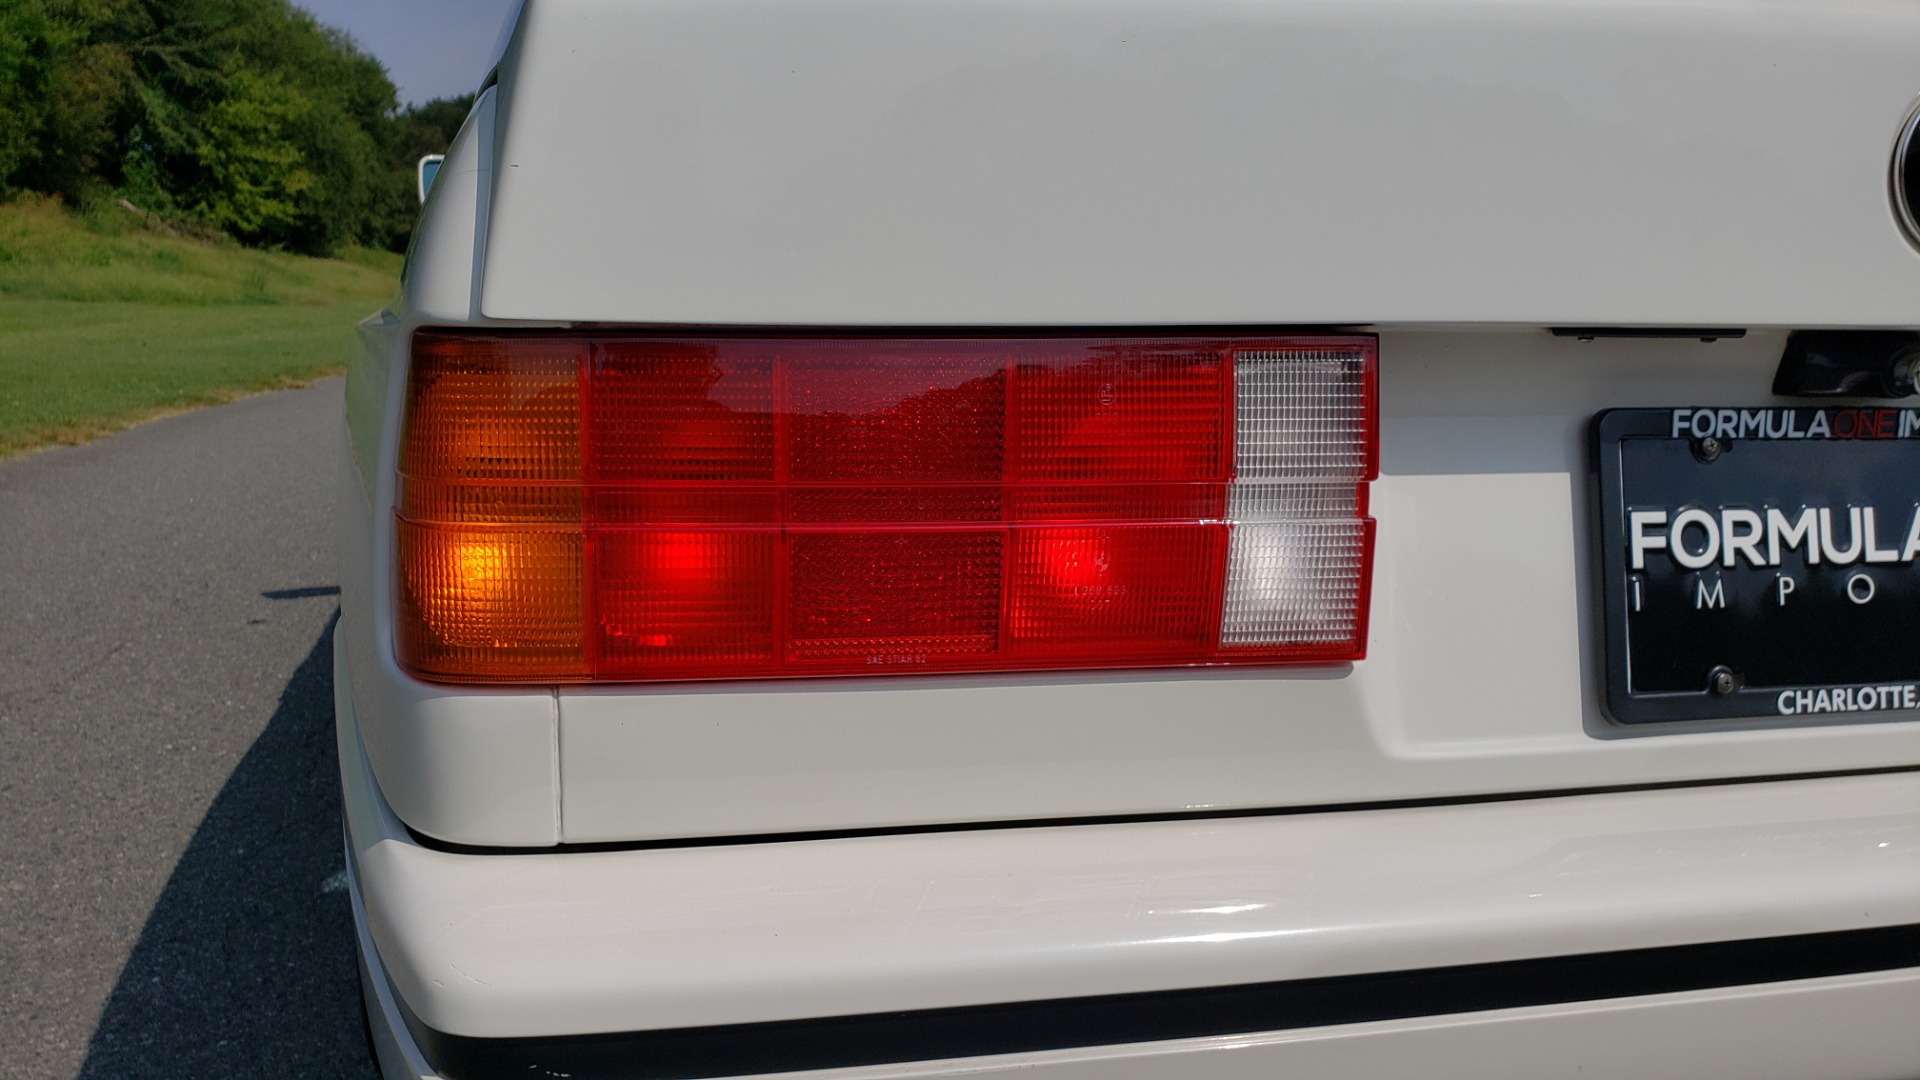 Used 1989 BMW M3 COUPE 2DR / 5-SPEED MAN / LOW MILES / SUPER CLEAN for sale Sold at Formula Imports in Charlotte NC 28227 30